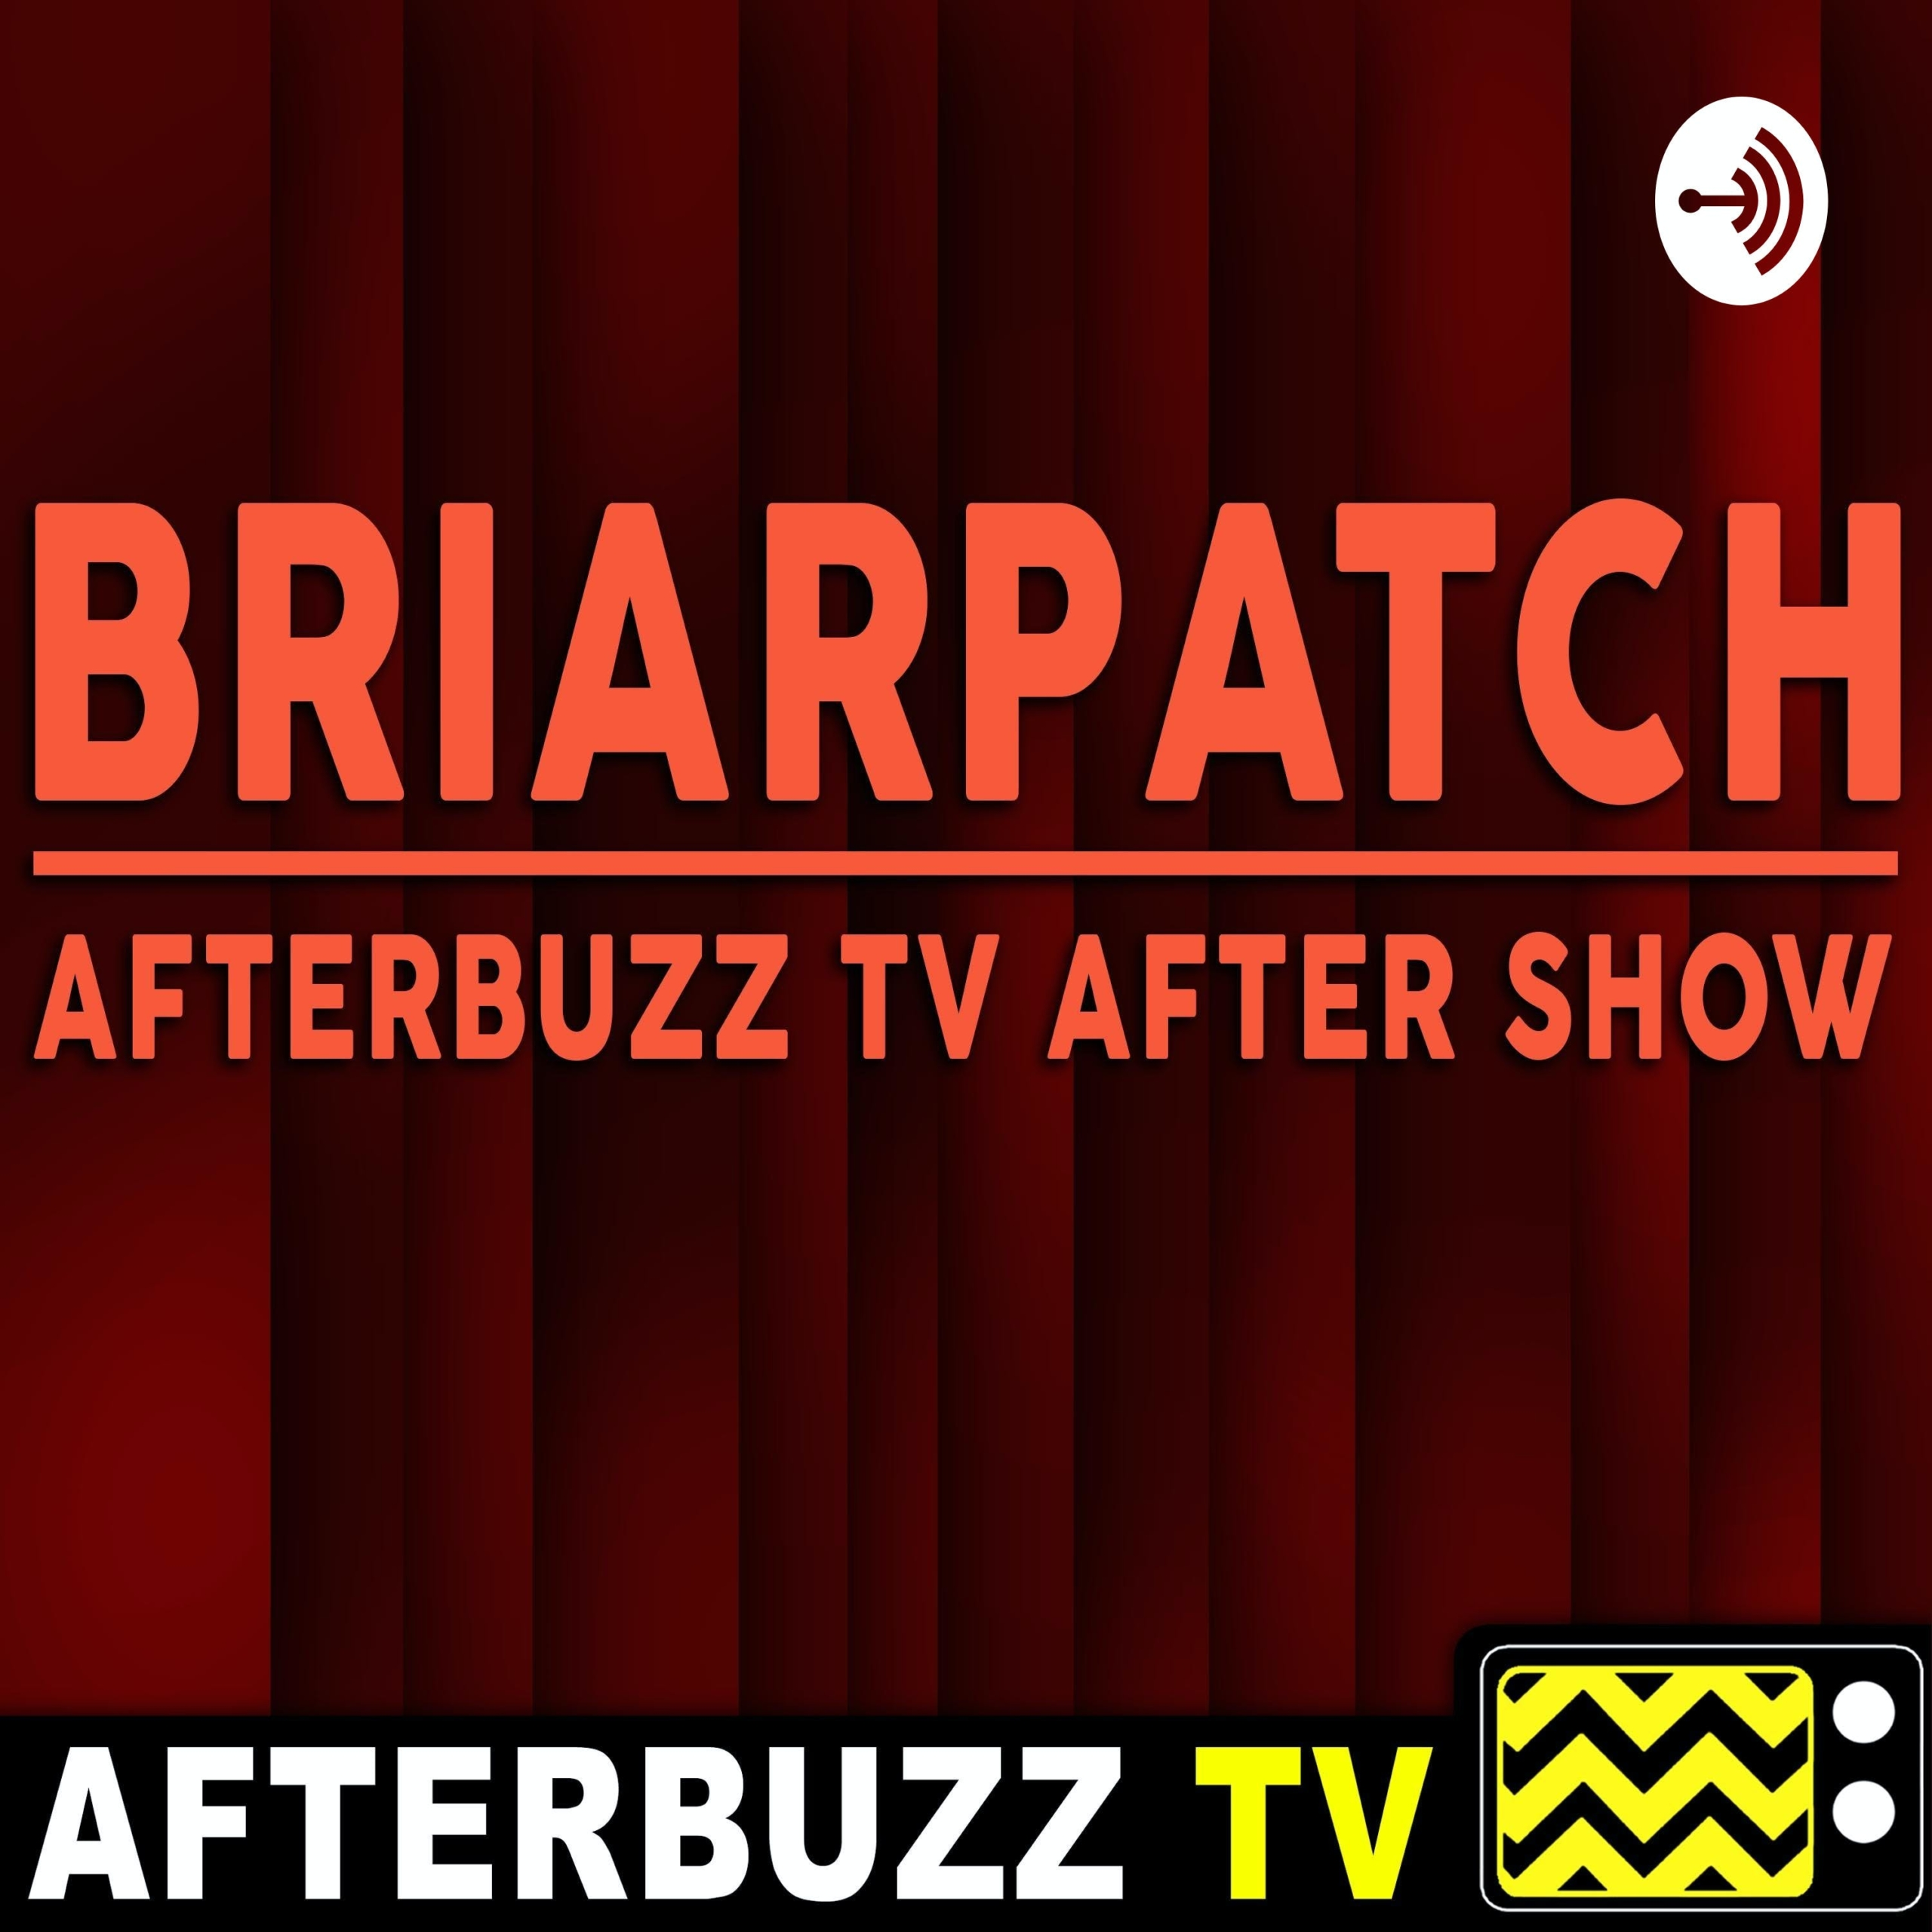 Allegra Lines Them Up And Knocks Them Down – S1 E10 'Briarpatch' After Show